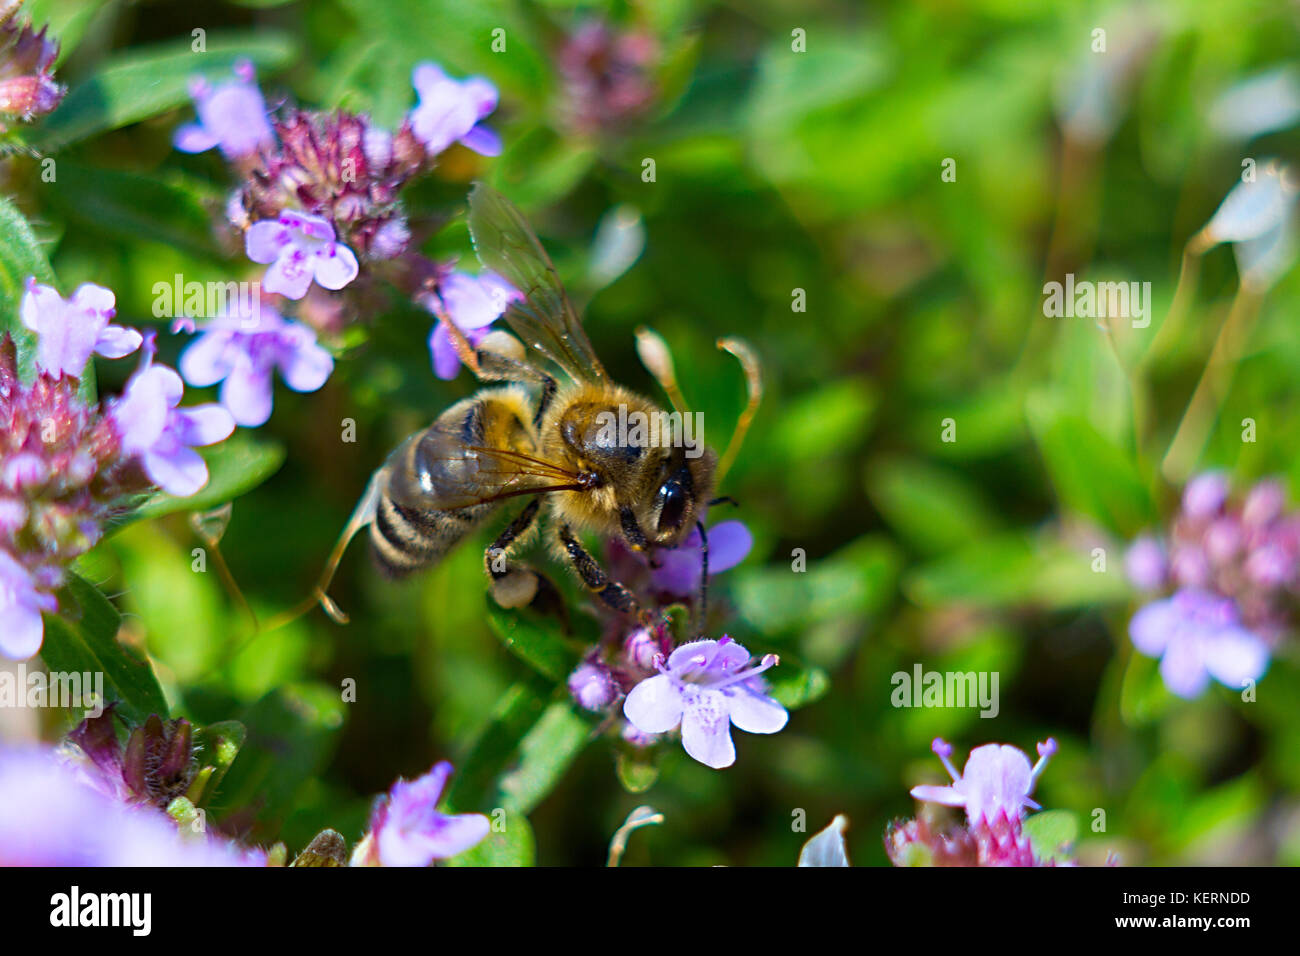 The bee sits on a purple thyme flower. Close-up - Stock Image